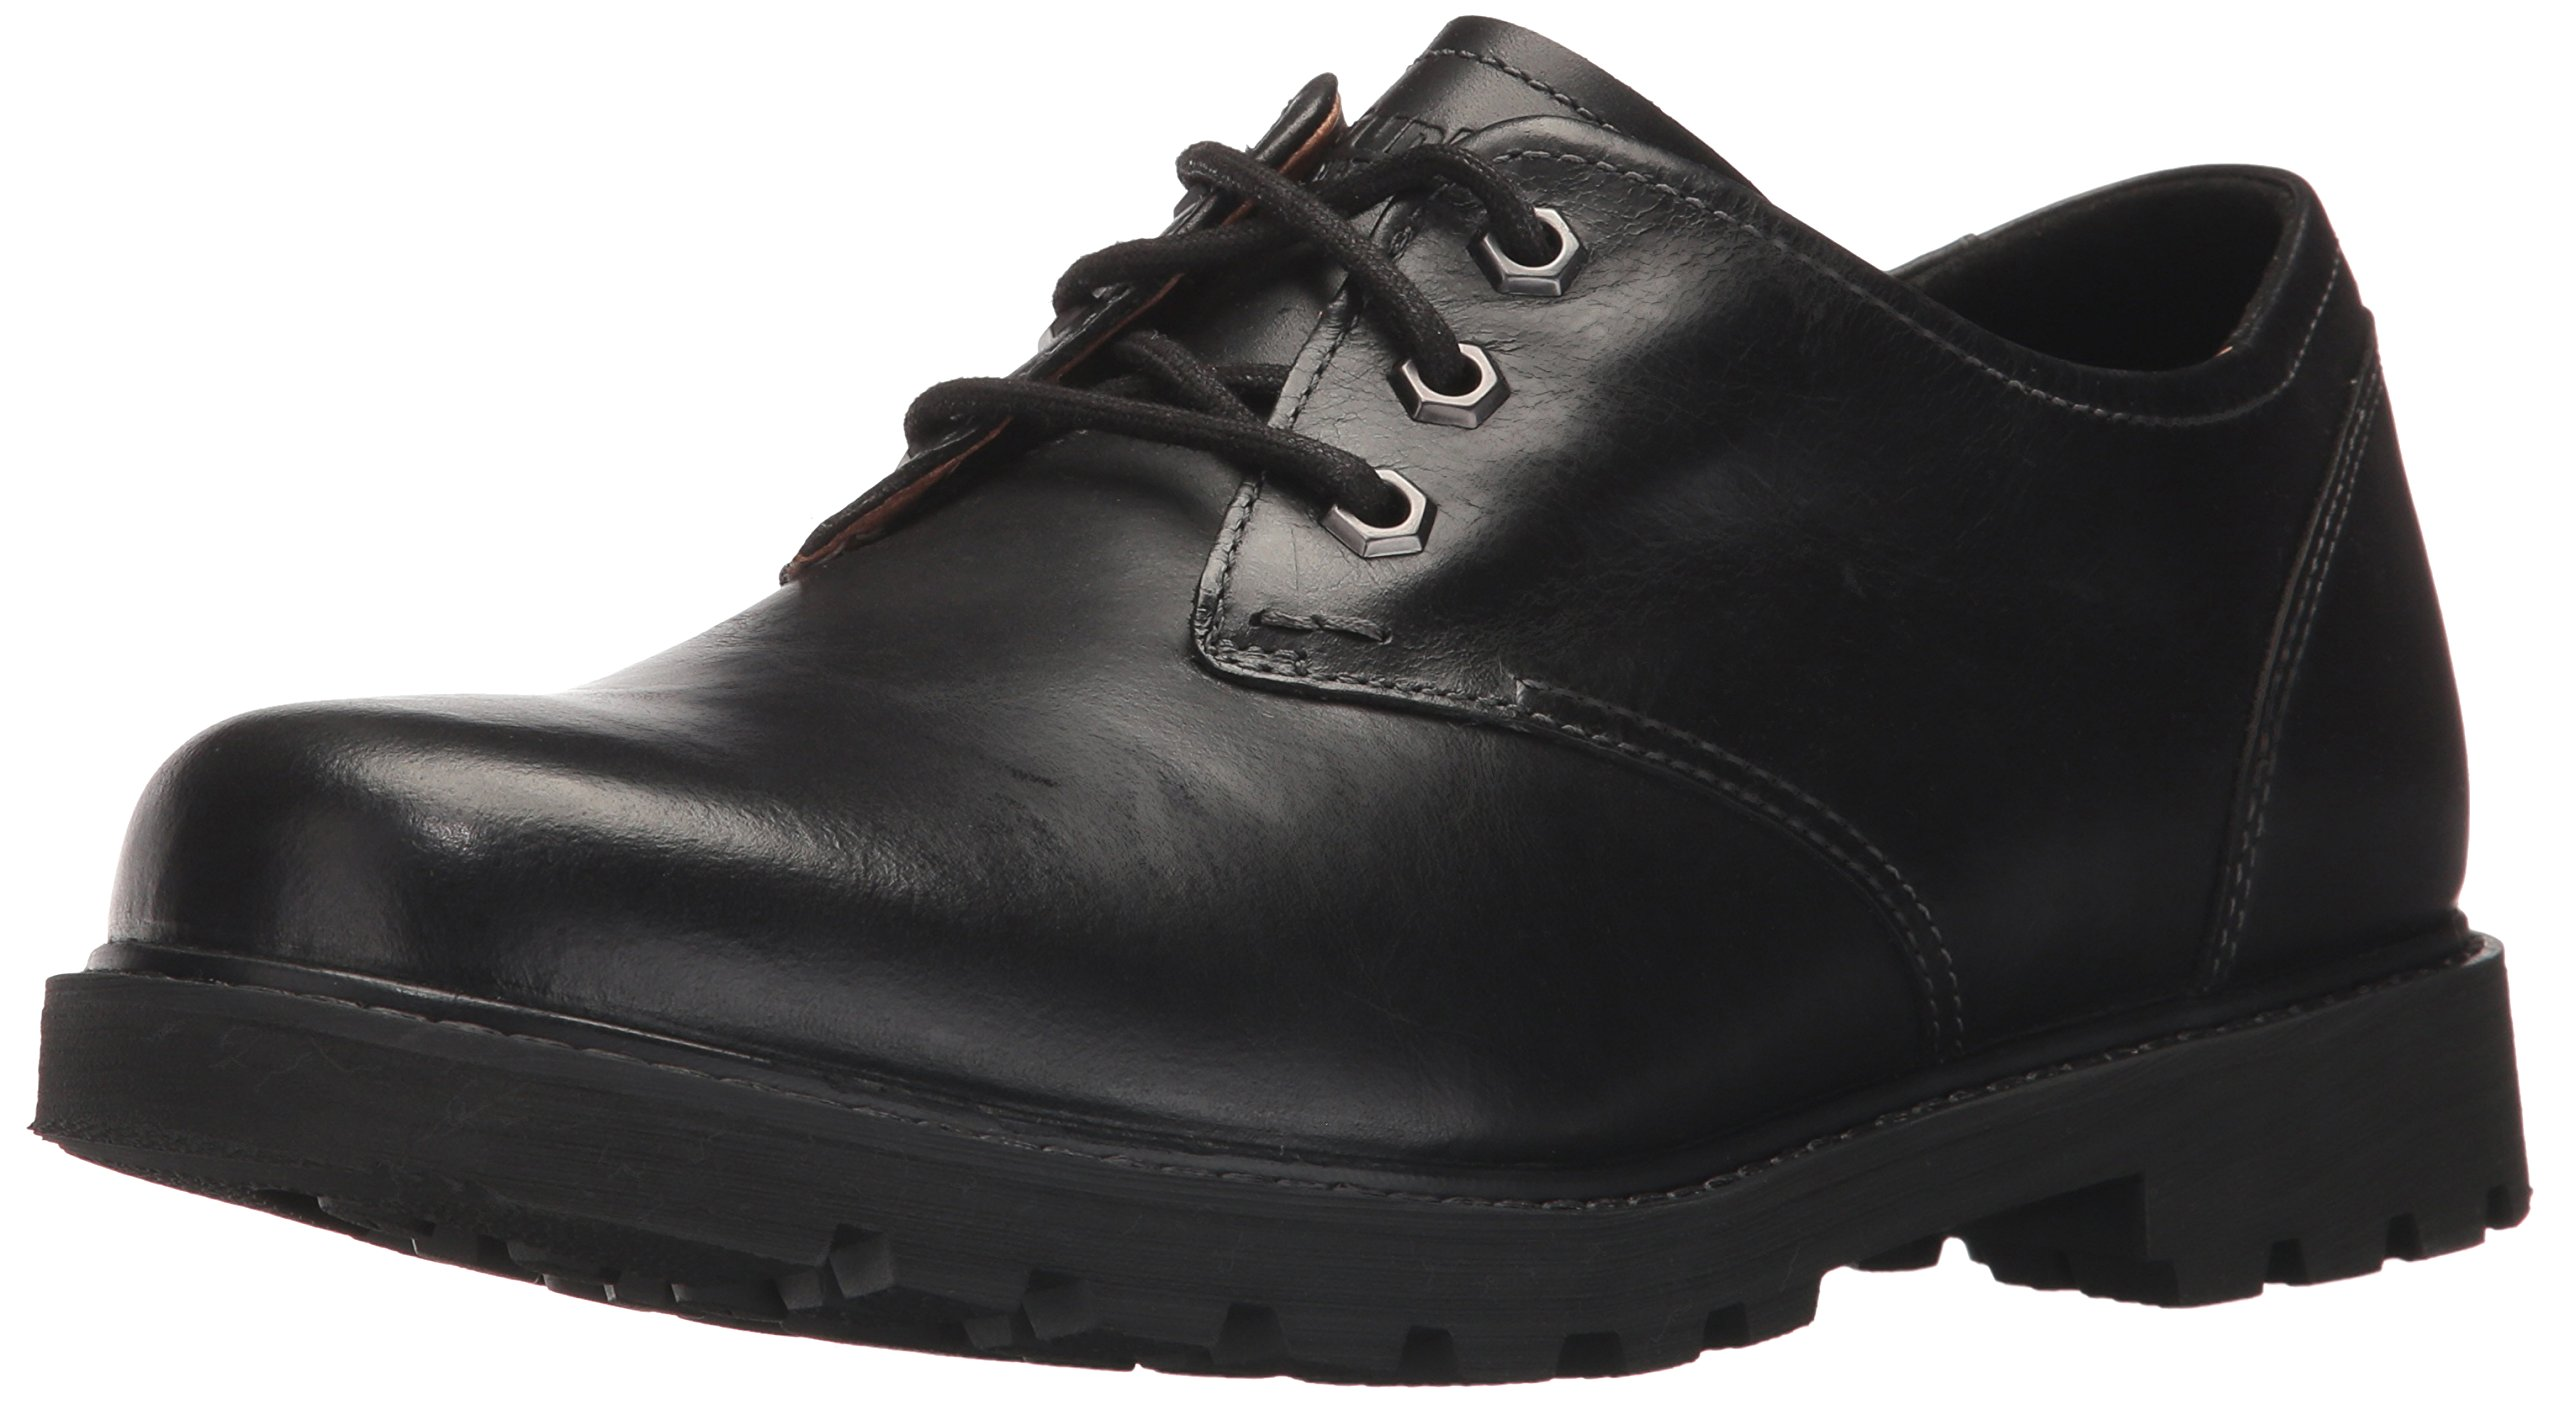 Dunham Men's Royalton Oxford, Black, 12 4E US